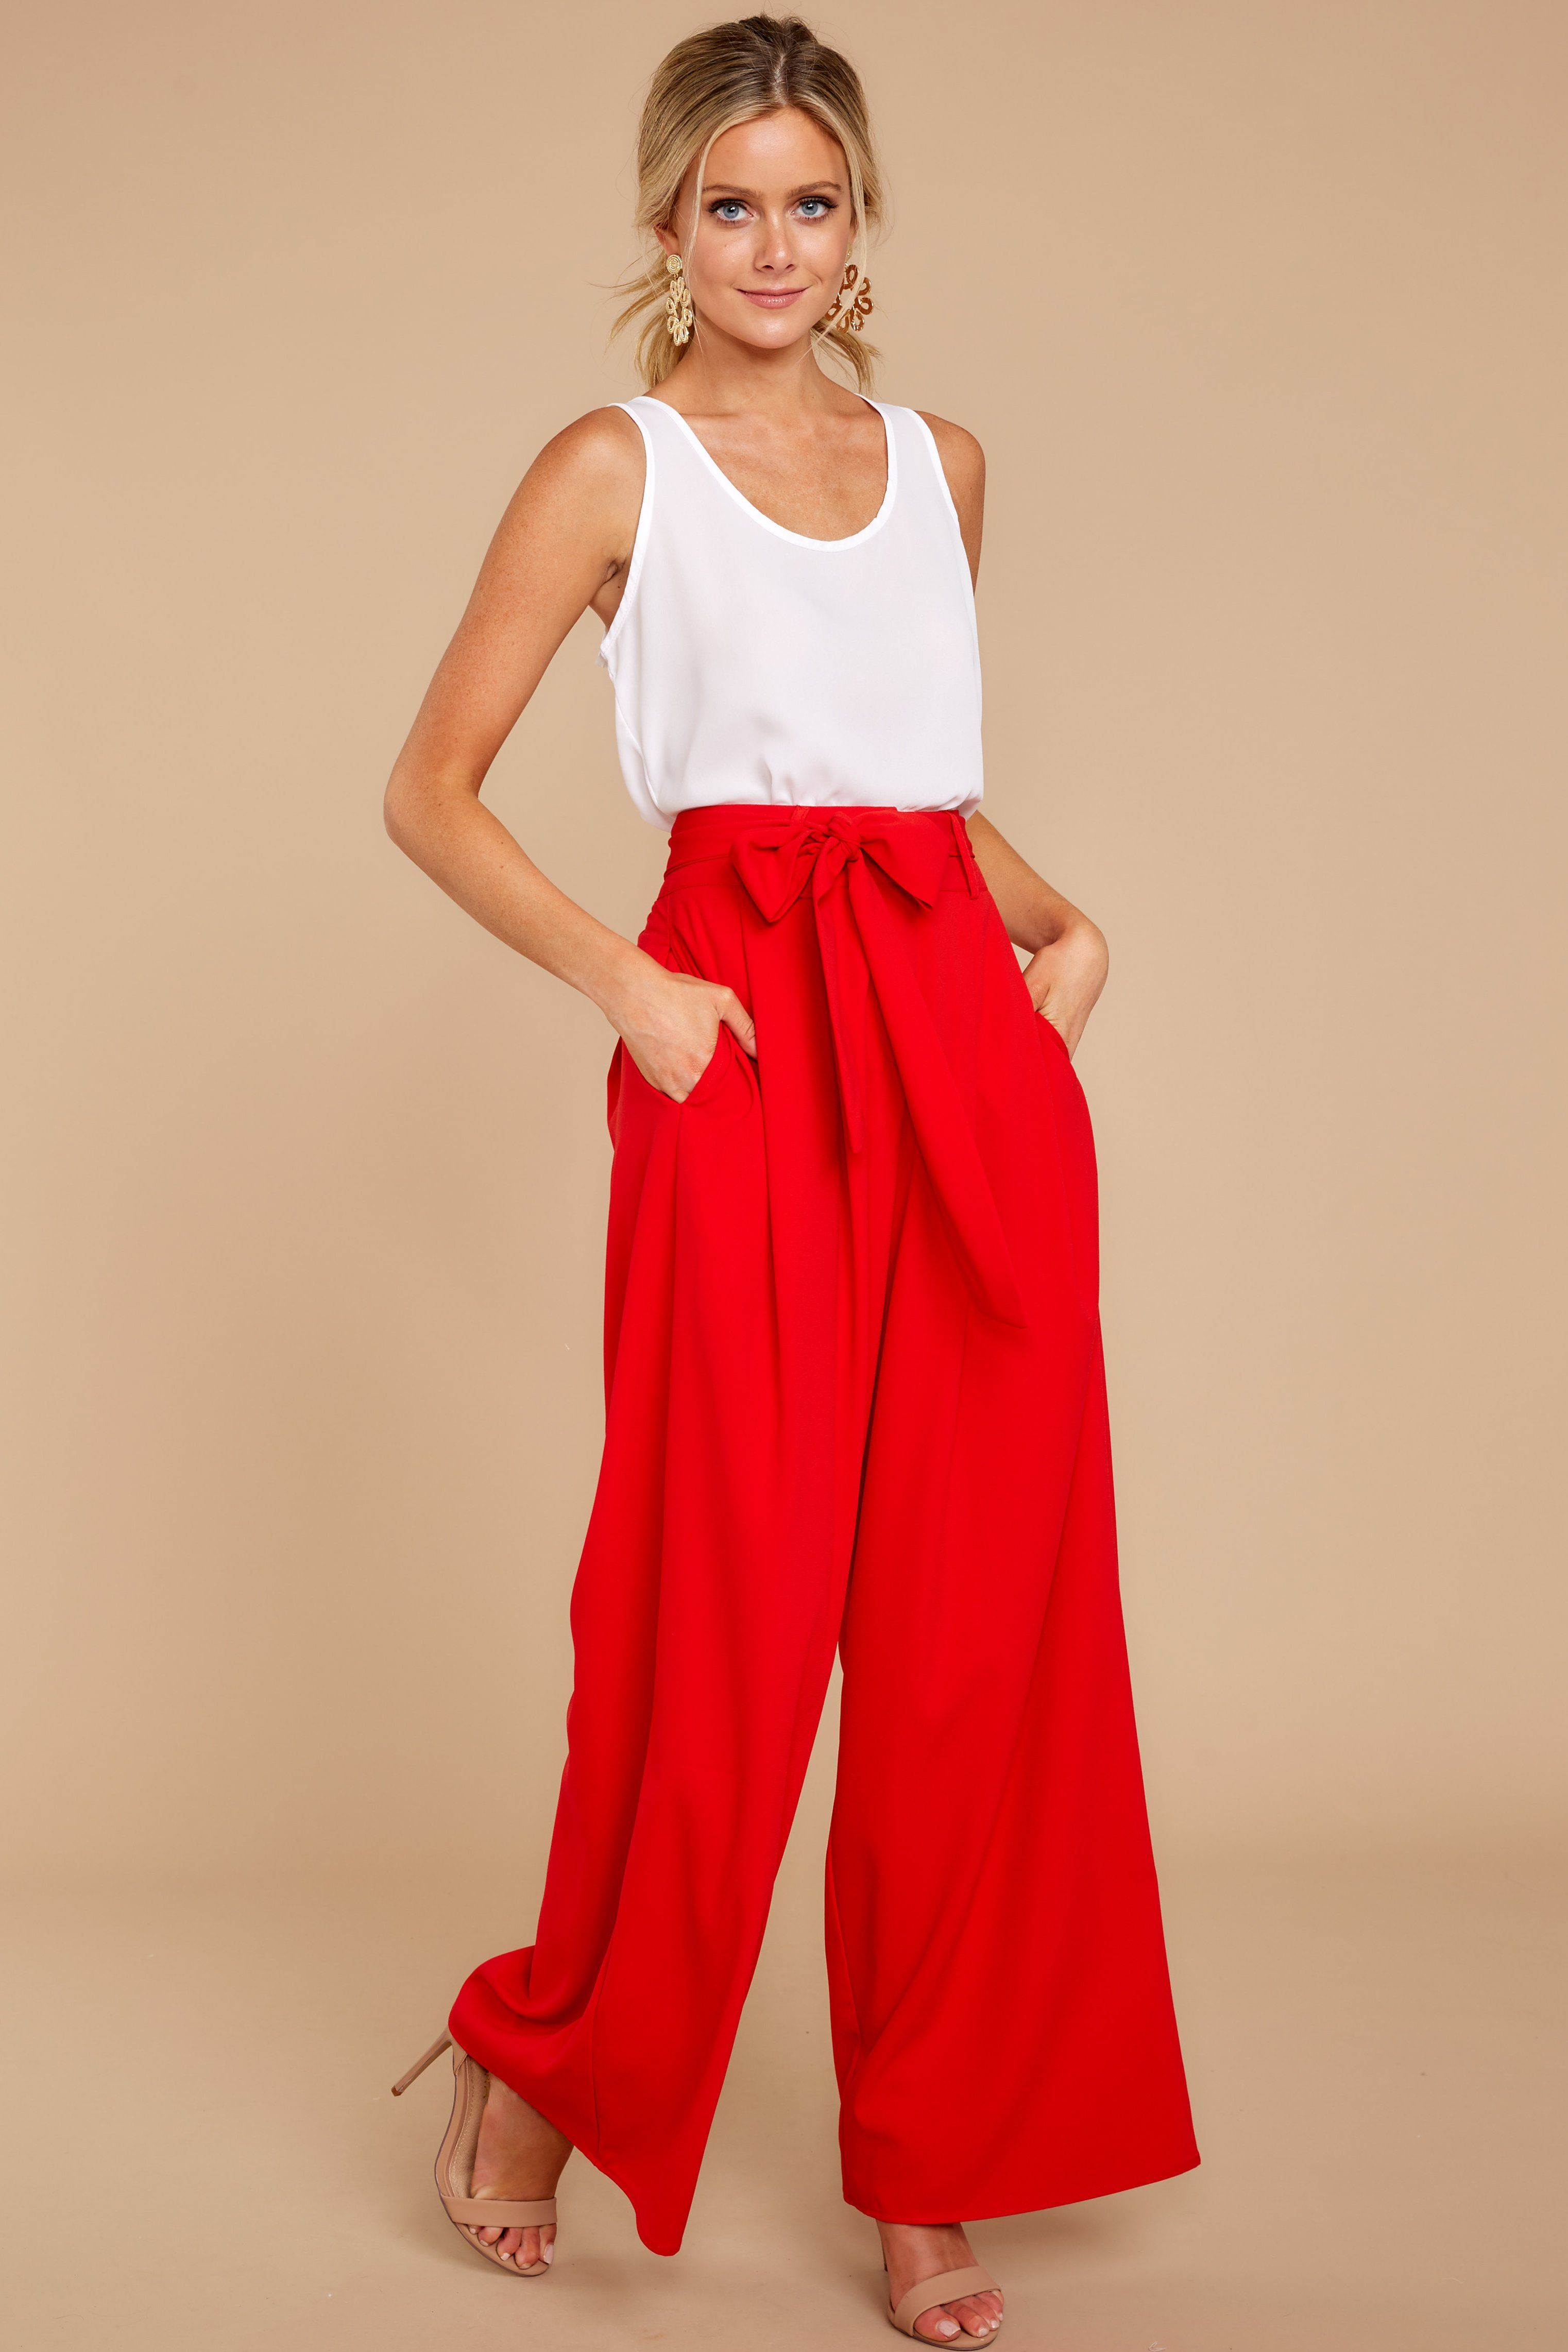 Trendy Red Pants Chic Red Pants Pants 38 00 Red Dress Boutique Red Dress Pants Red Pants Outfit Red Dress Outfit [ 4566 x 3044 Pixel ]